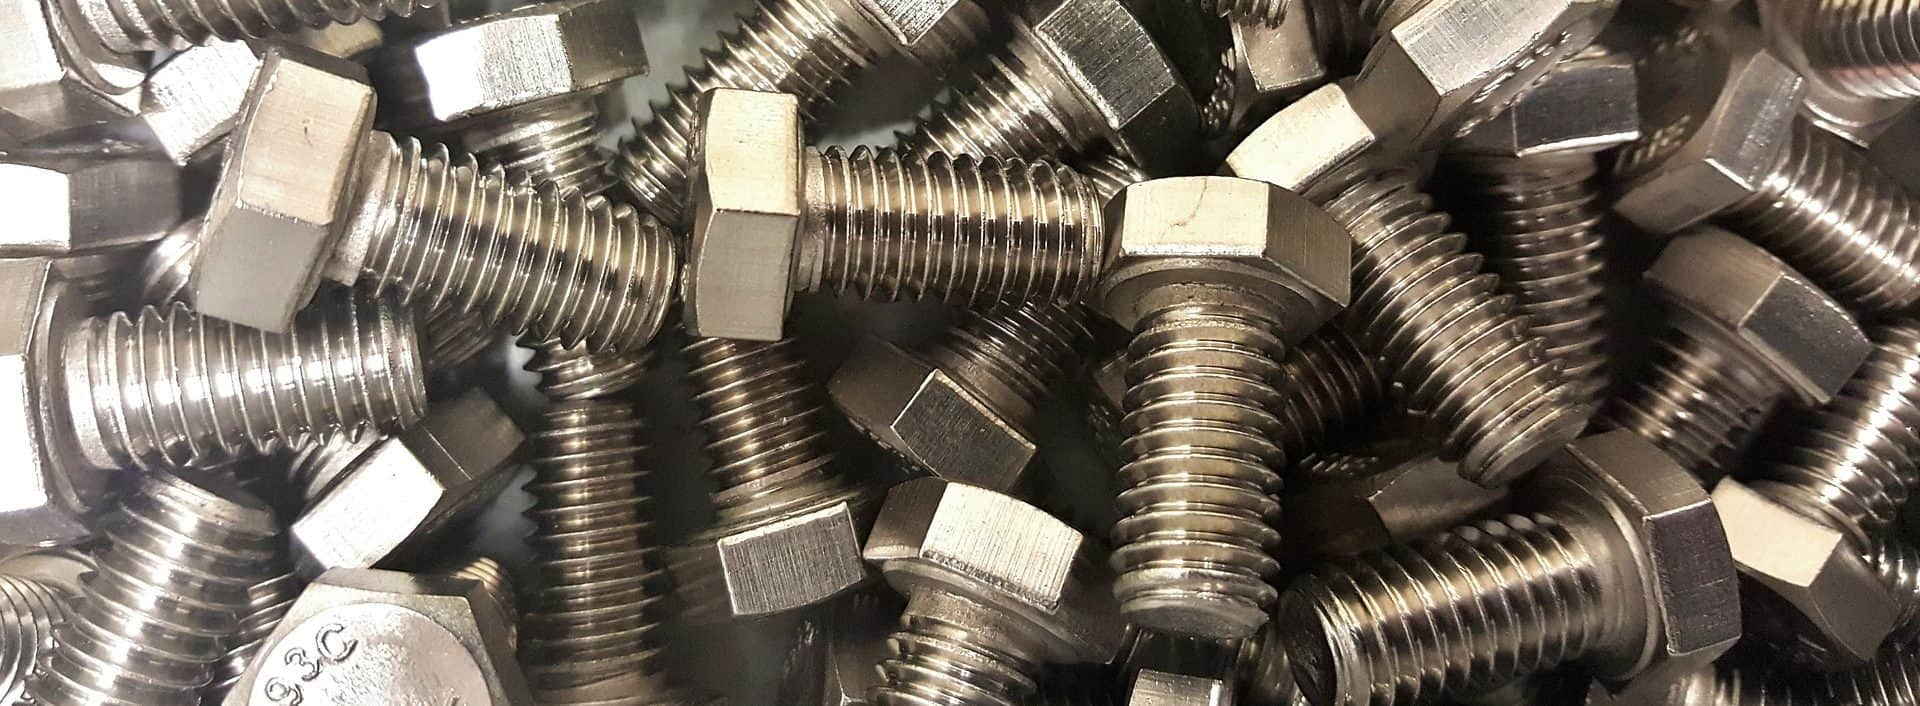 Imperial Amp Metric Fastener Suppliers Near Me In West